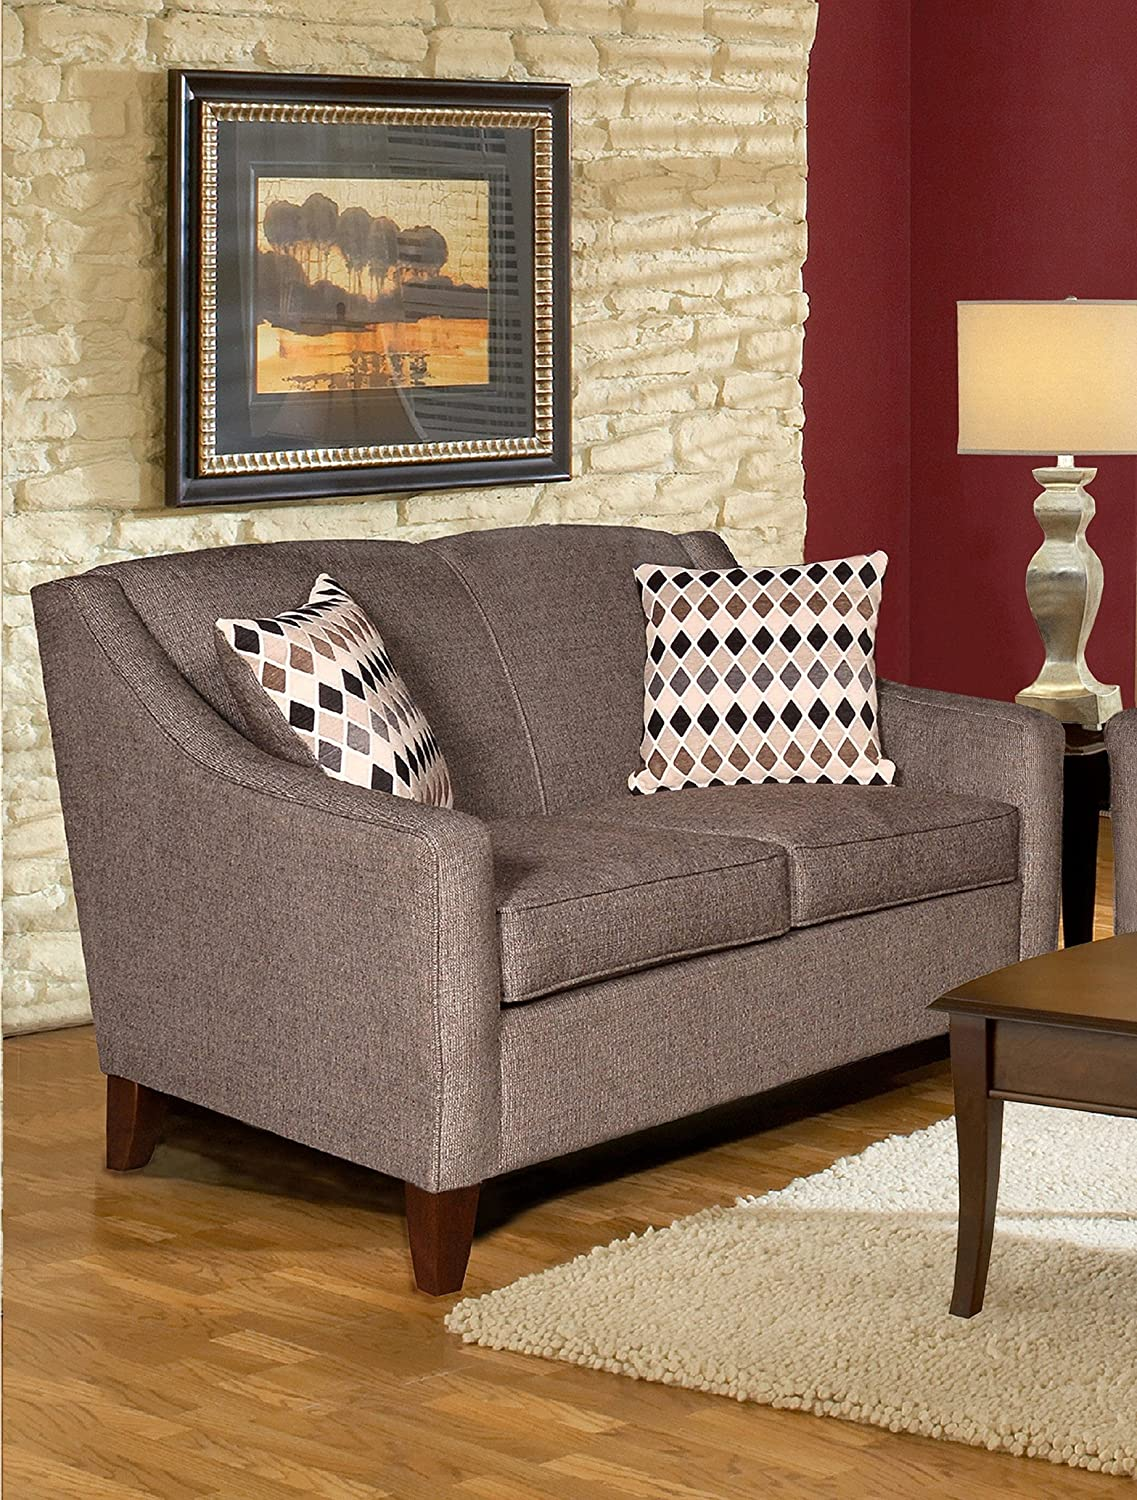 Chelsea Home Furniture Hilda Loveseat - Sagittarius Granite/Montage Pewter Pillows